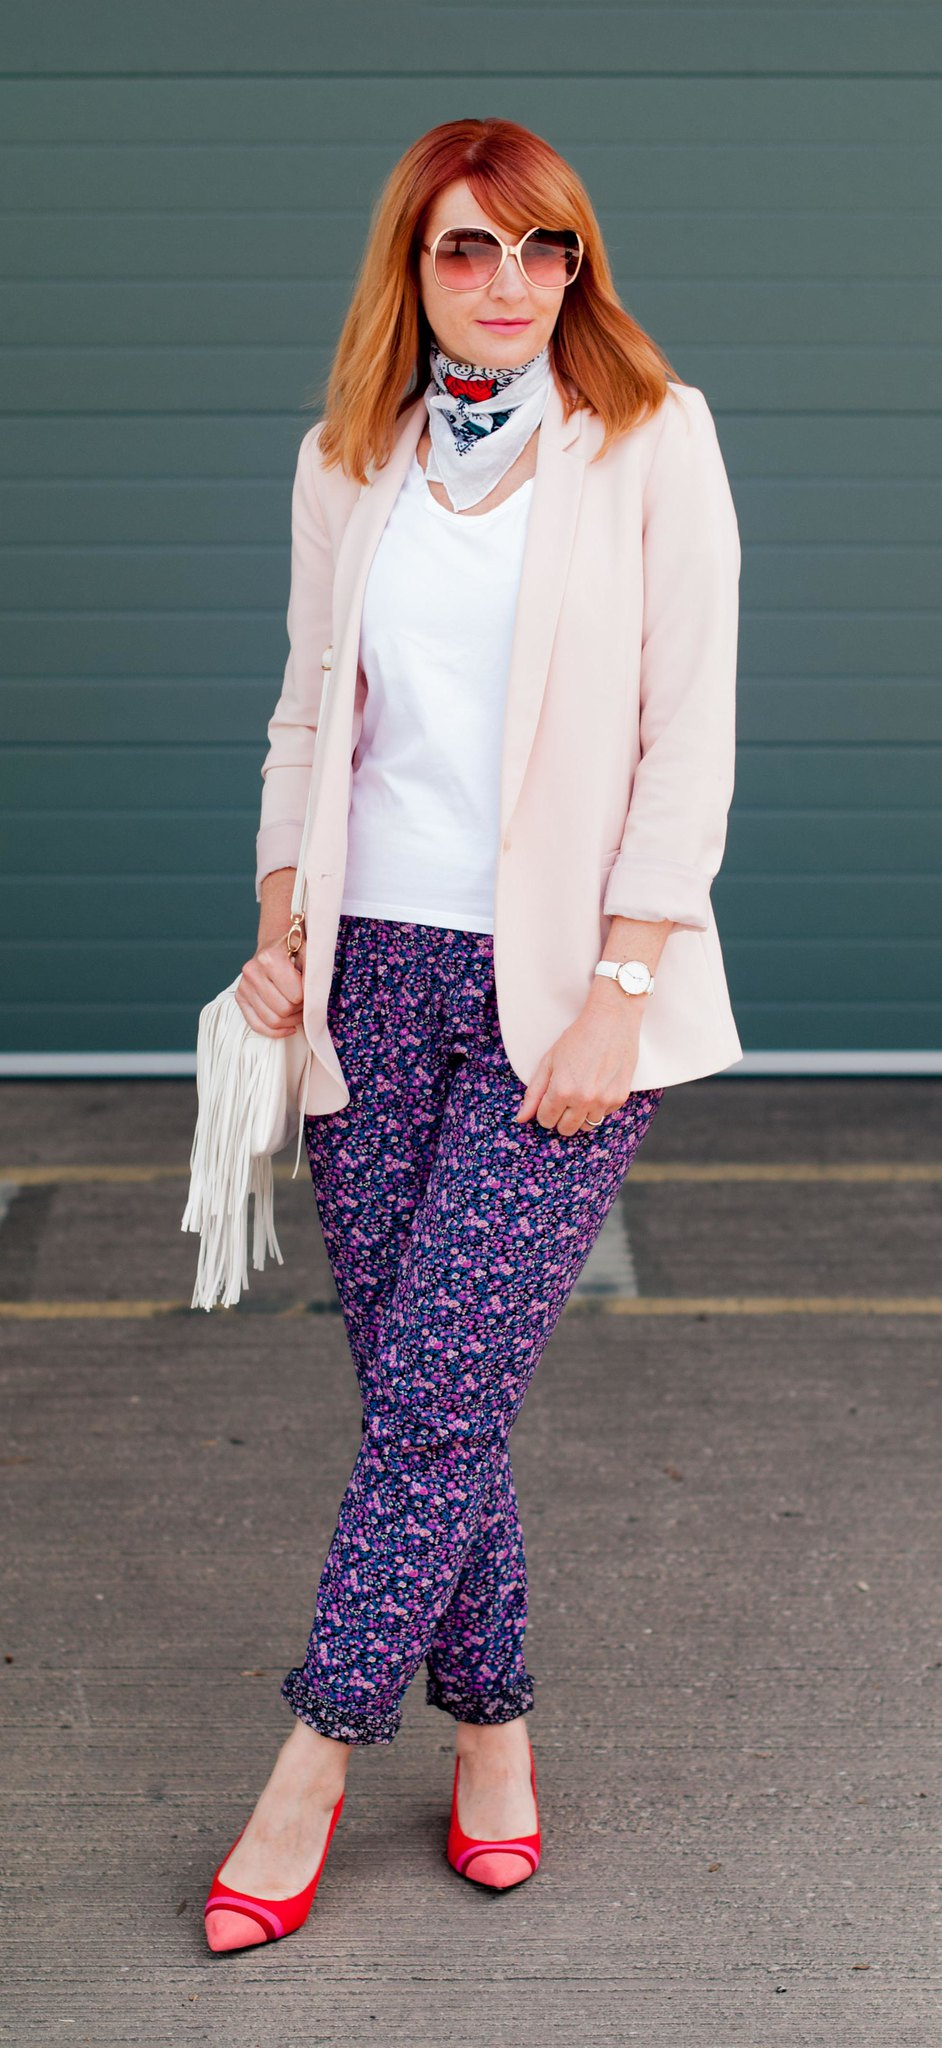 Summer dressing for cooler days: Pale pink blazer \ loose floral trousers \ red striped block heel shoes \ neck scarf \ white fringe cross body bag | Not Dressed As Lamb, over 40 style